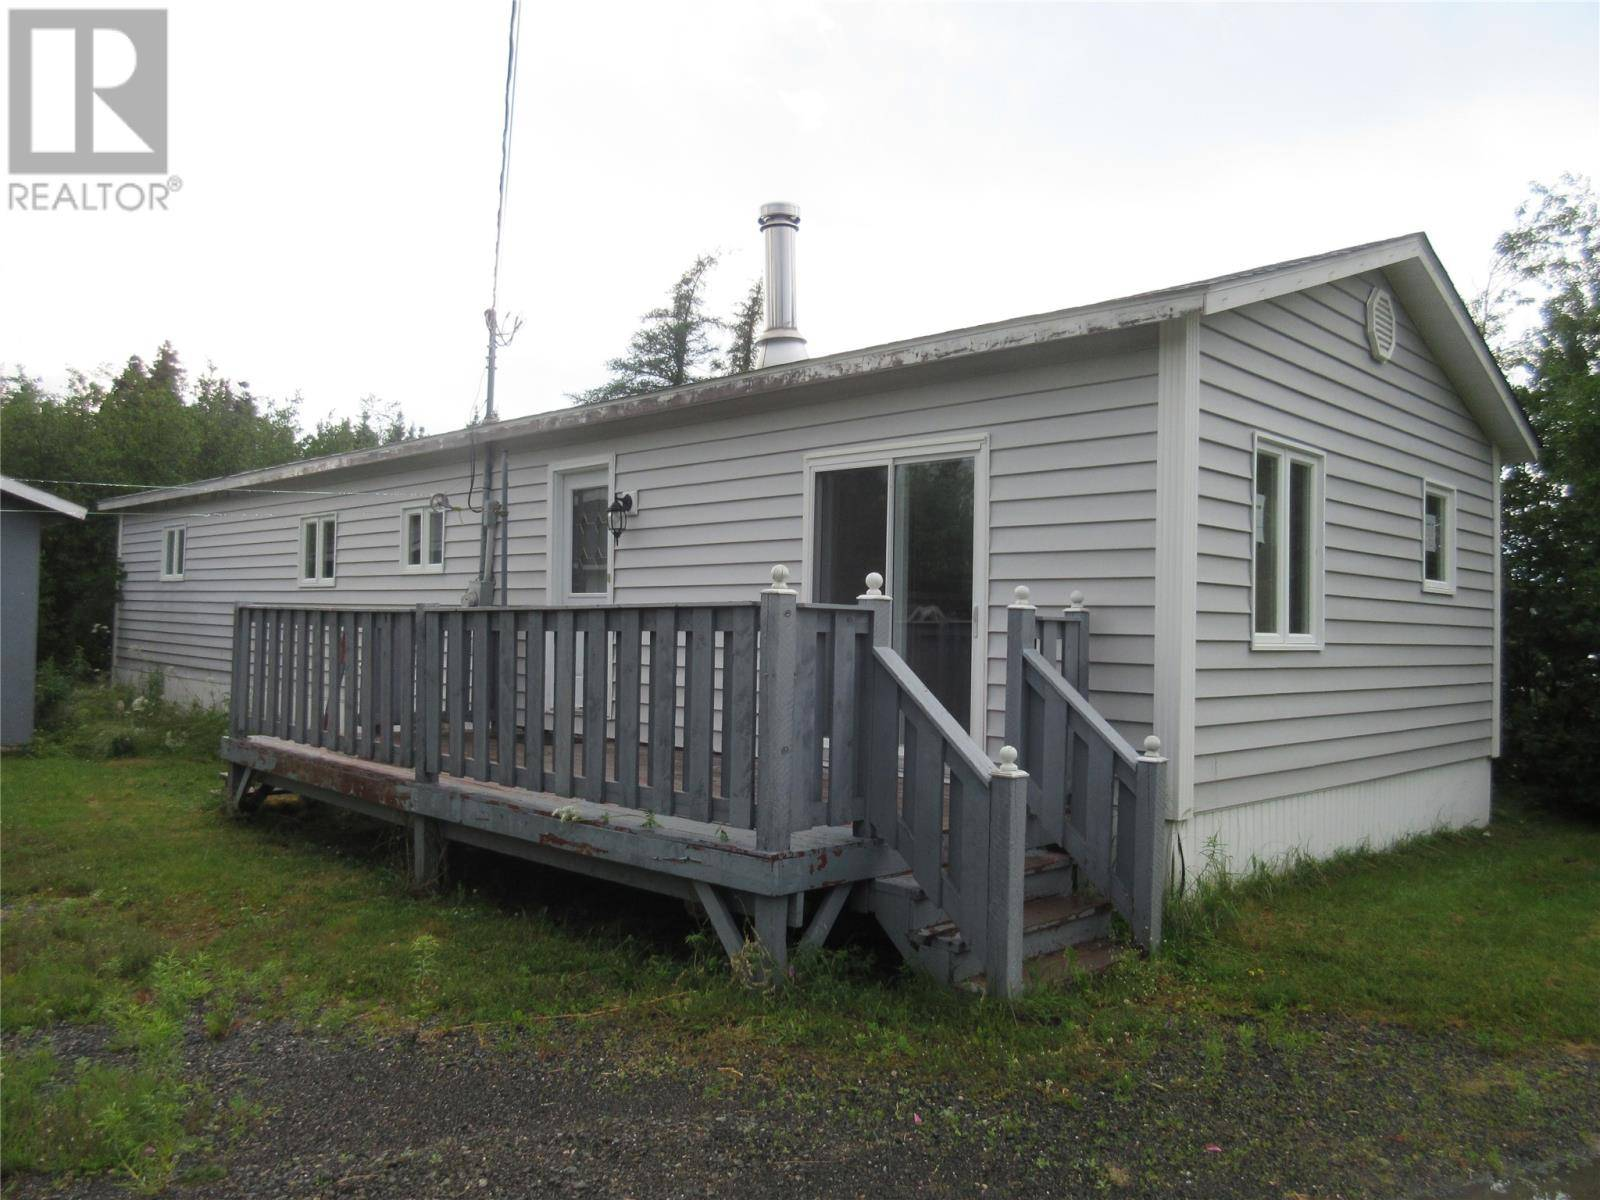 Residential property for sale at 5 Randells Ave Glovertown Newfoundland - MLS: 1200734